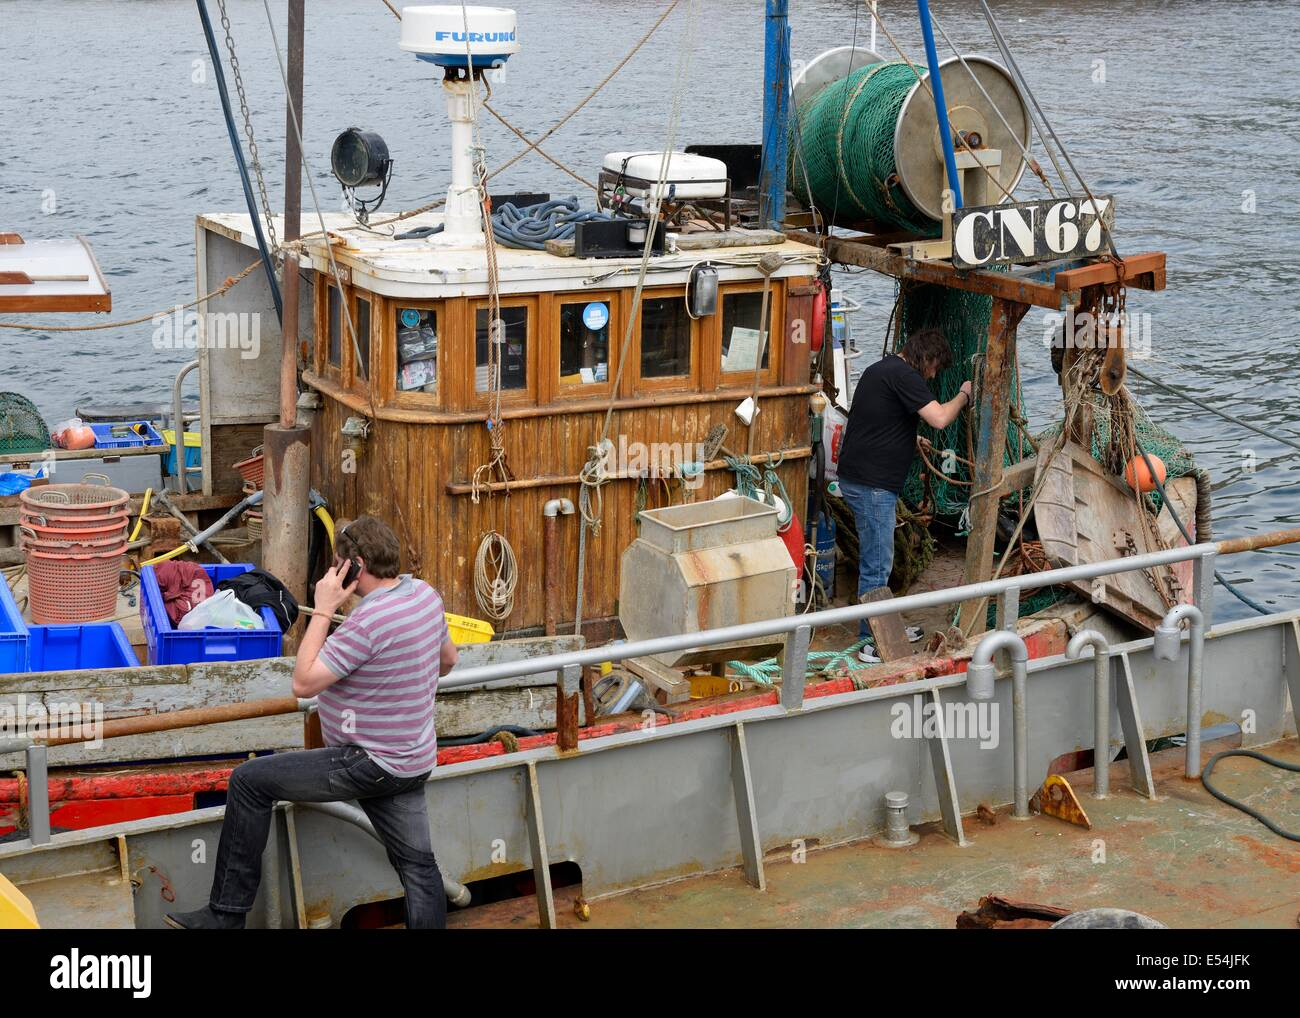 Old Fishing Boat Cabin High Resolution Stock Photography And Images Alamy